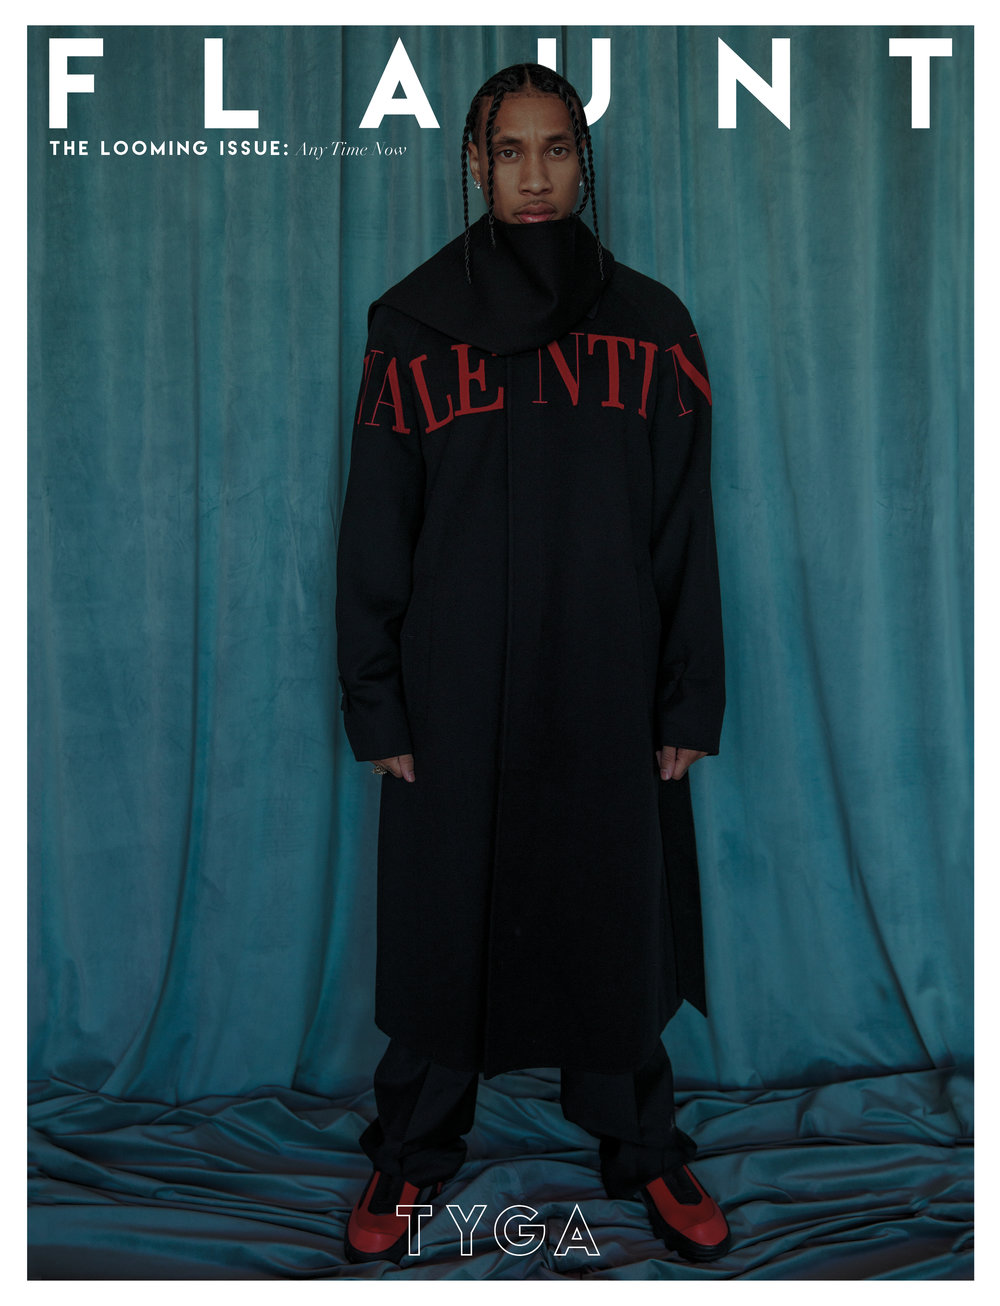 Tyga covers Flaunt Magazine Issue 166 by Lowfield